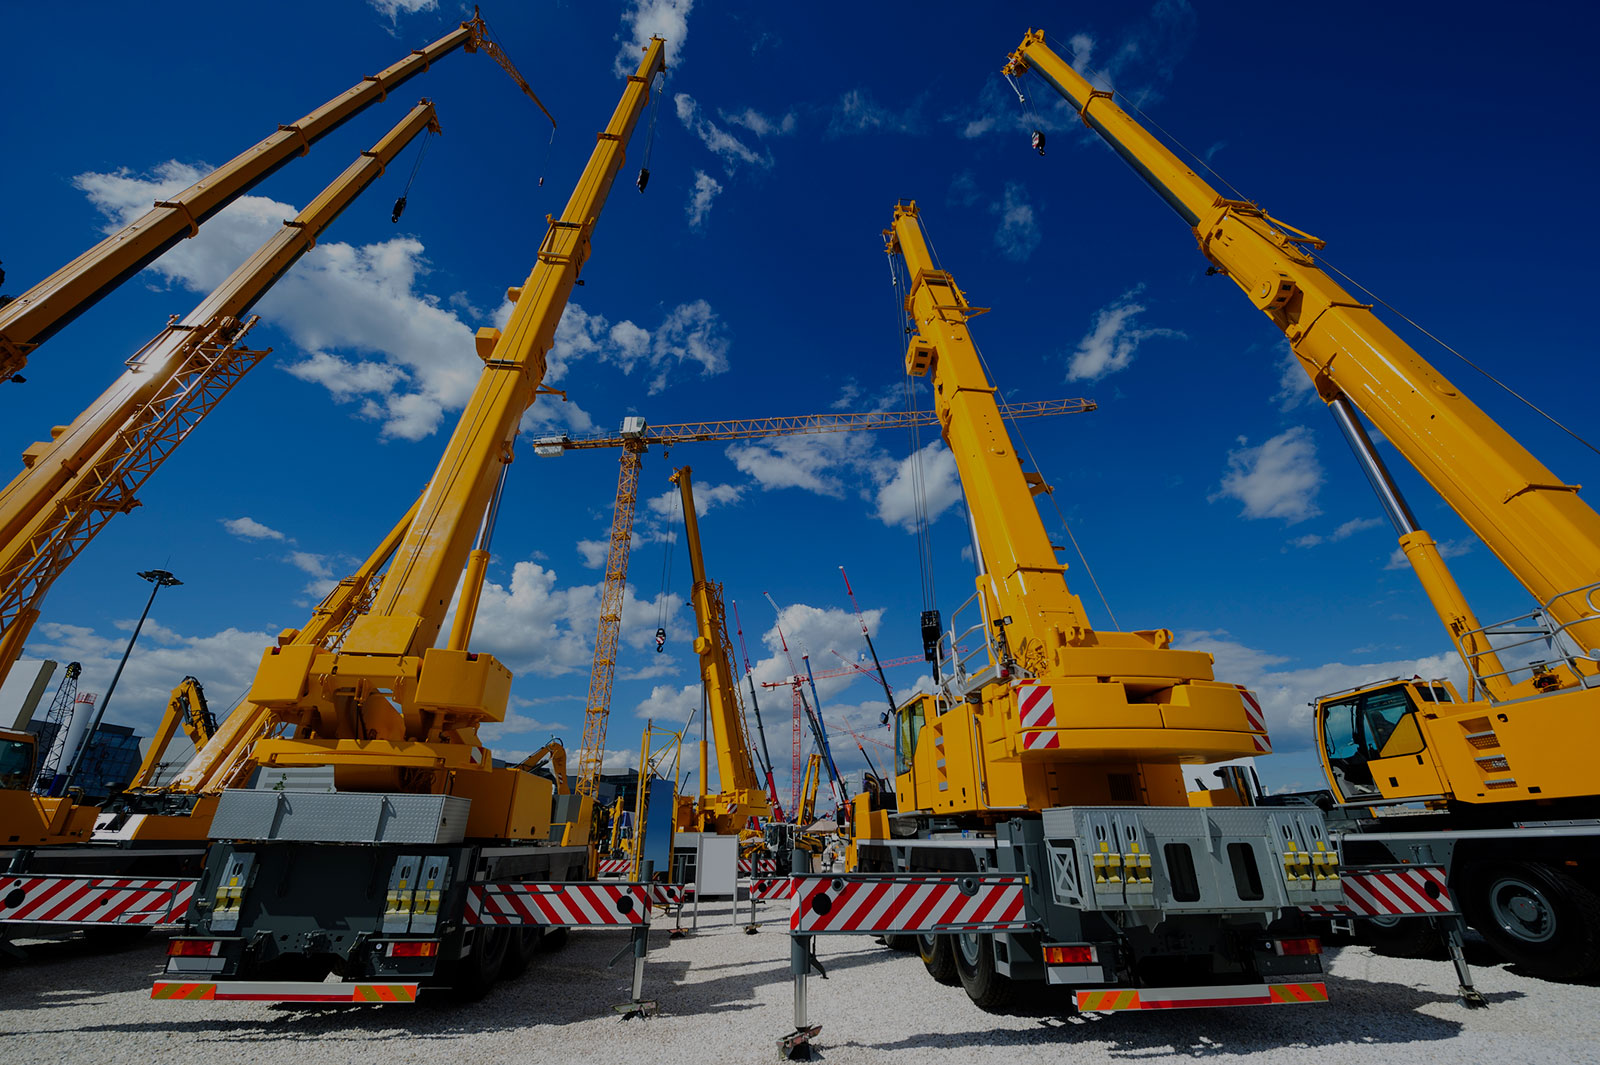 Equipment Leasing & Finance Header Background - Yellow Cranes Underneath Blue Sky